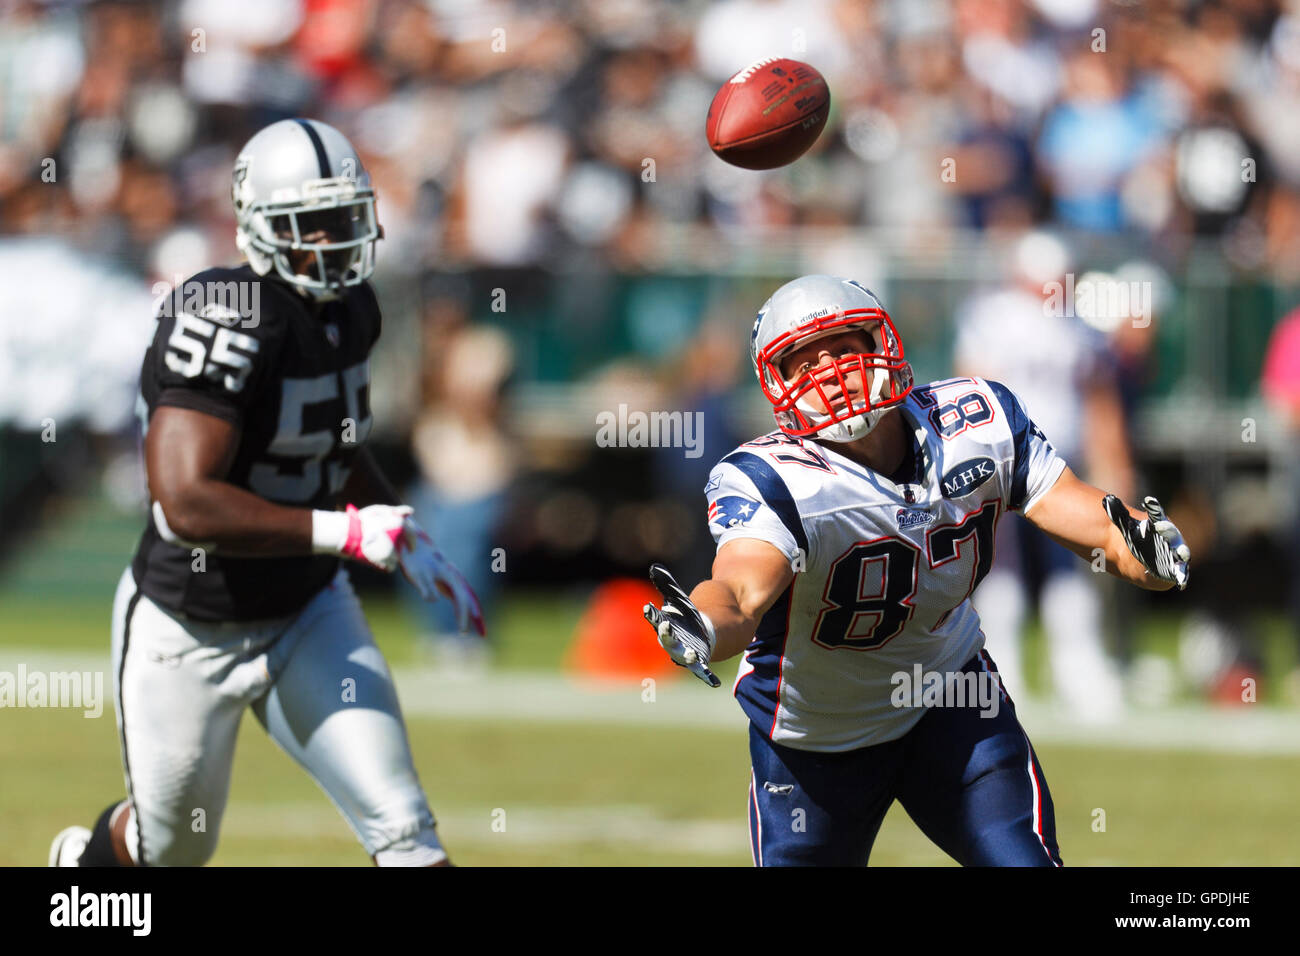 Nfl Football Player Rob Gronkowski Stock Photos   Nfl Football ... 42d11273d34